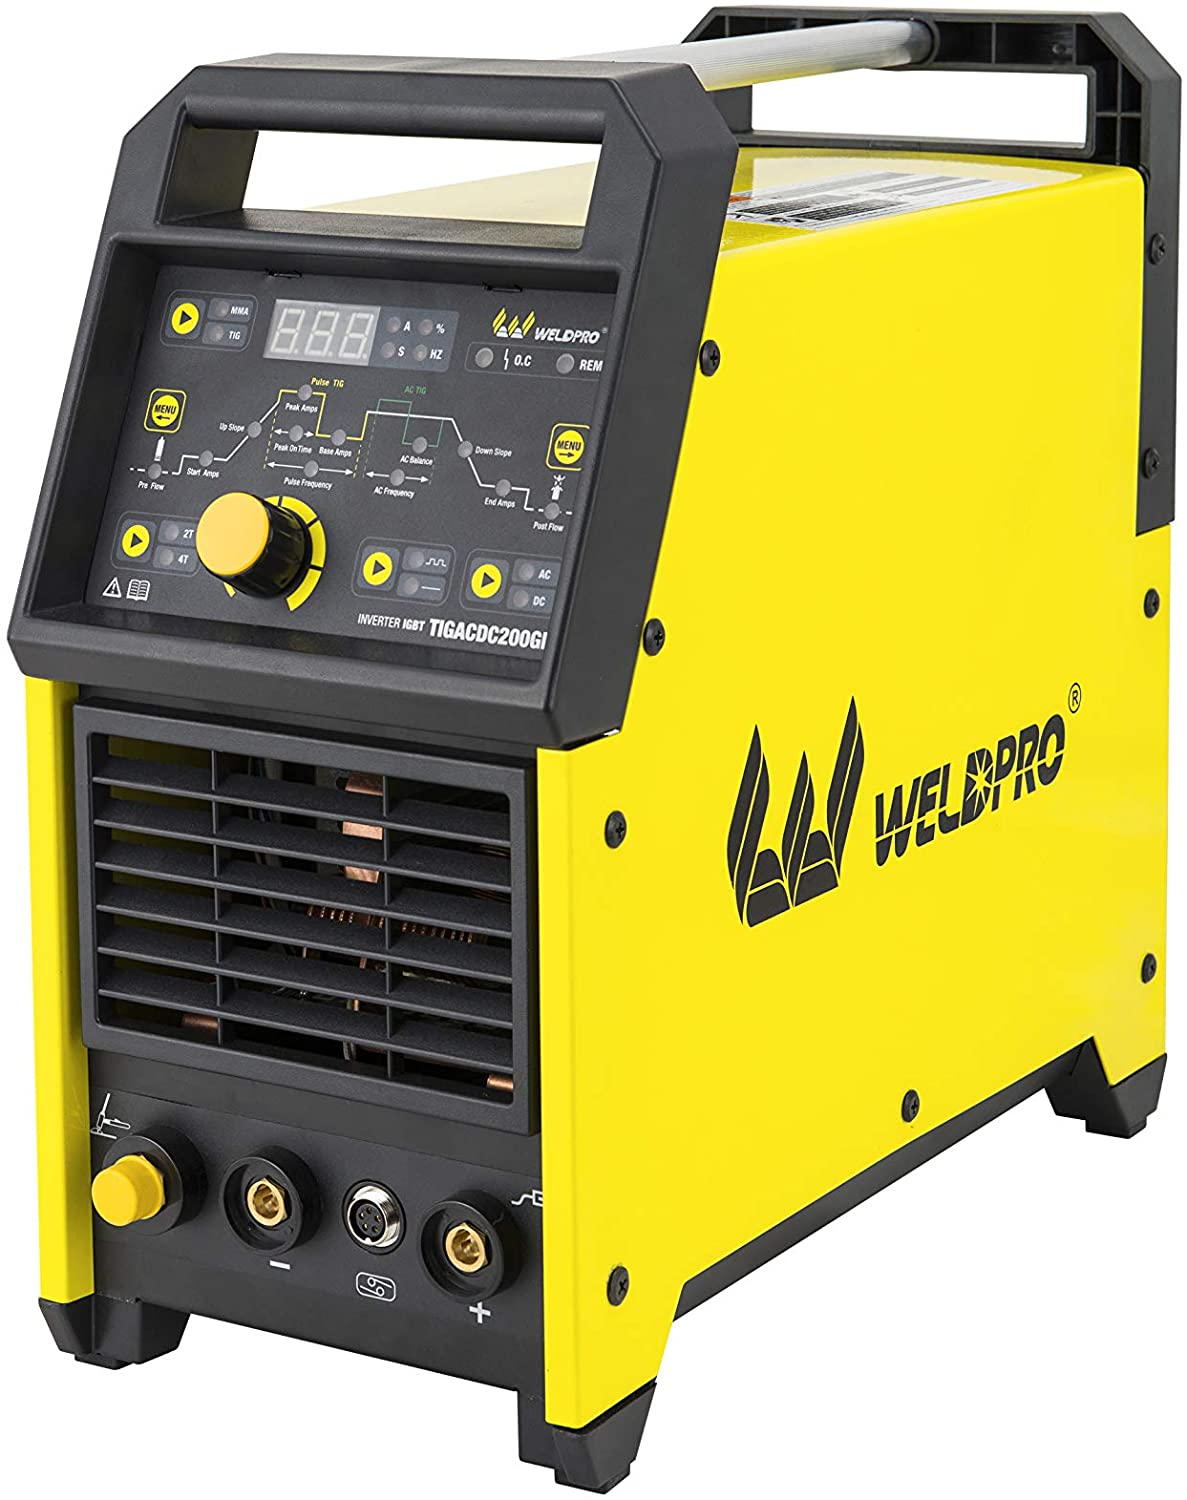 Weldpro Digital TIG 200GD ACDC